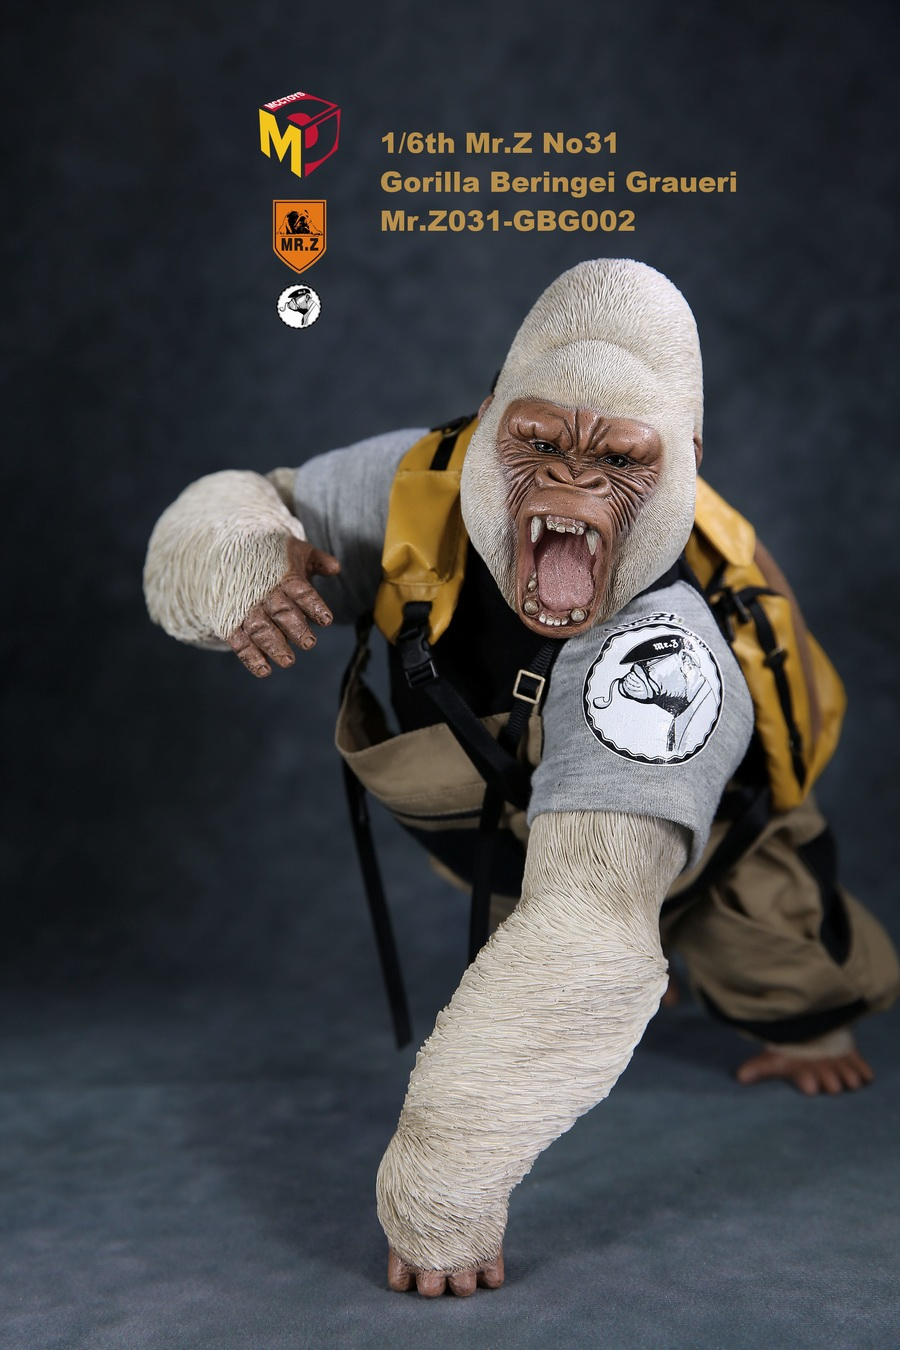 NEW PRODUCT: Mr.Z new product: 1/6 simulation animal model 31st bomb - African lowland gorilla (all 2 heads can be changed to upper limbs) 10110710